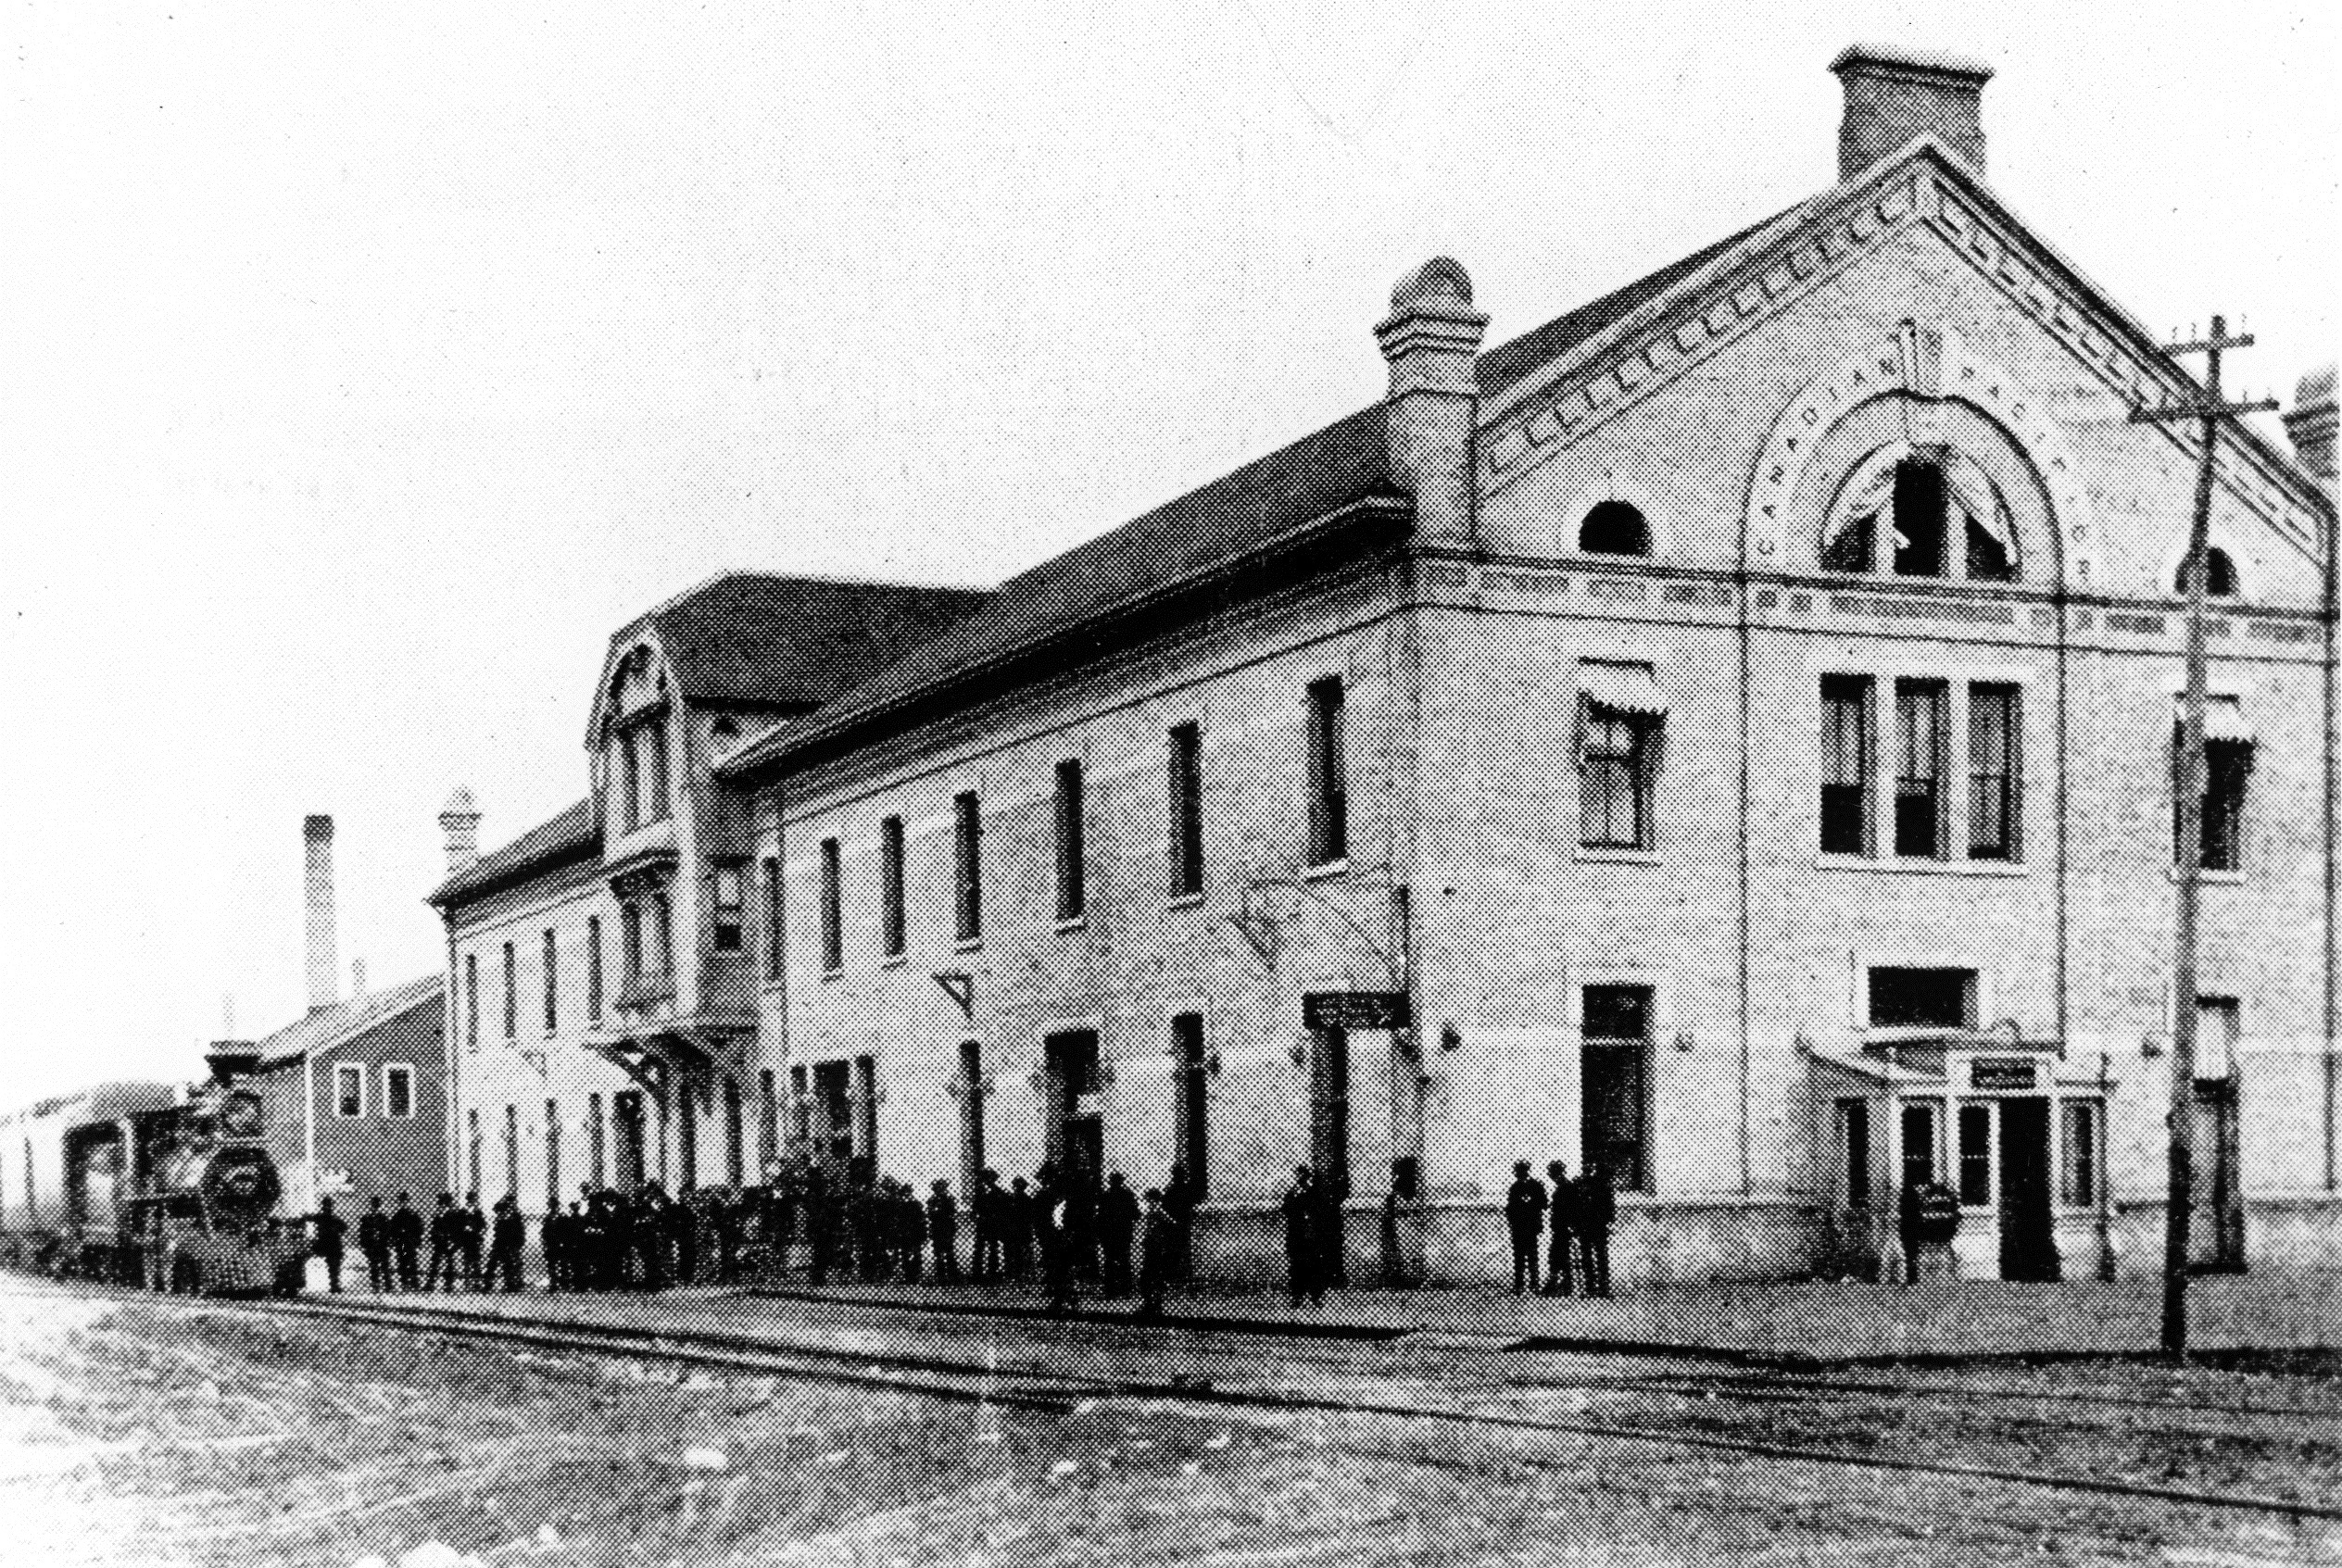 People wait outside the Winnipeg railway station as a train arrives in 1884. (Archives of Manitoba)